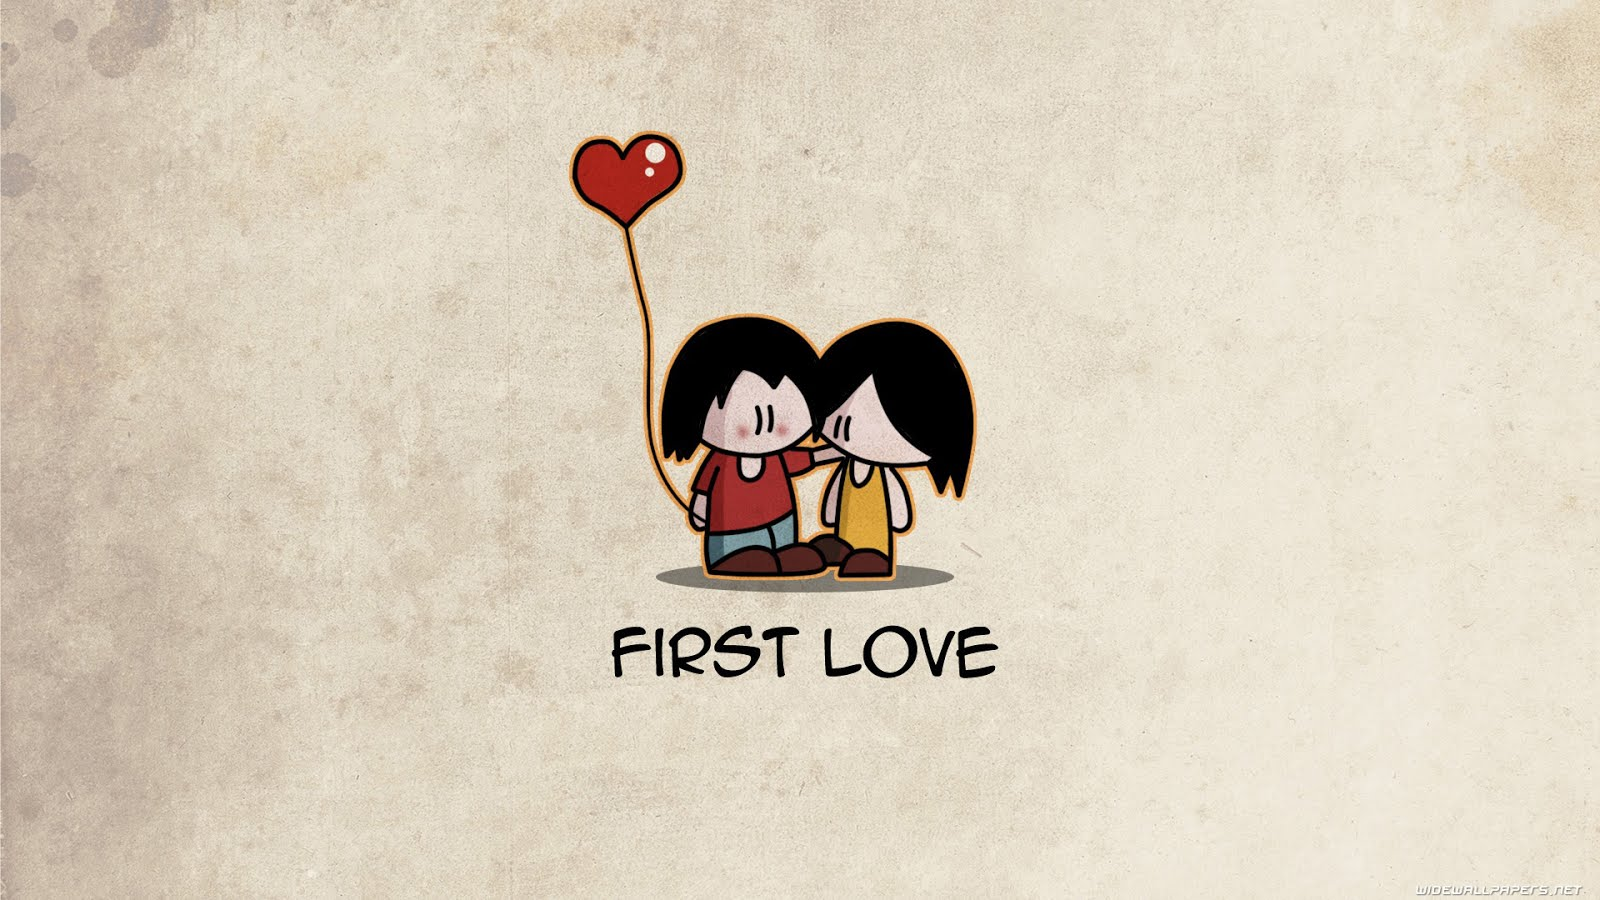 Love Wallpaper For cartoon : Love Is cartoon Wallpaper - cartoon Images